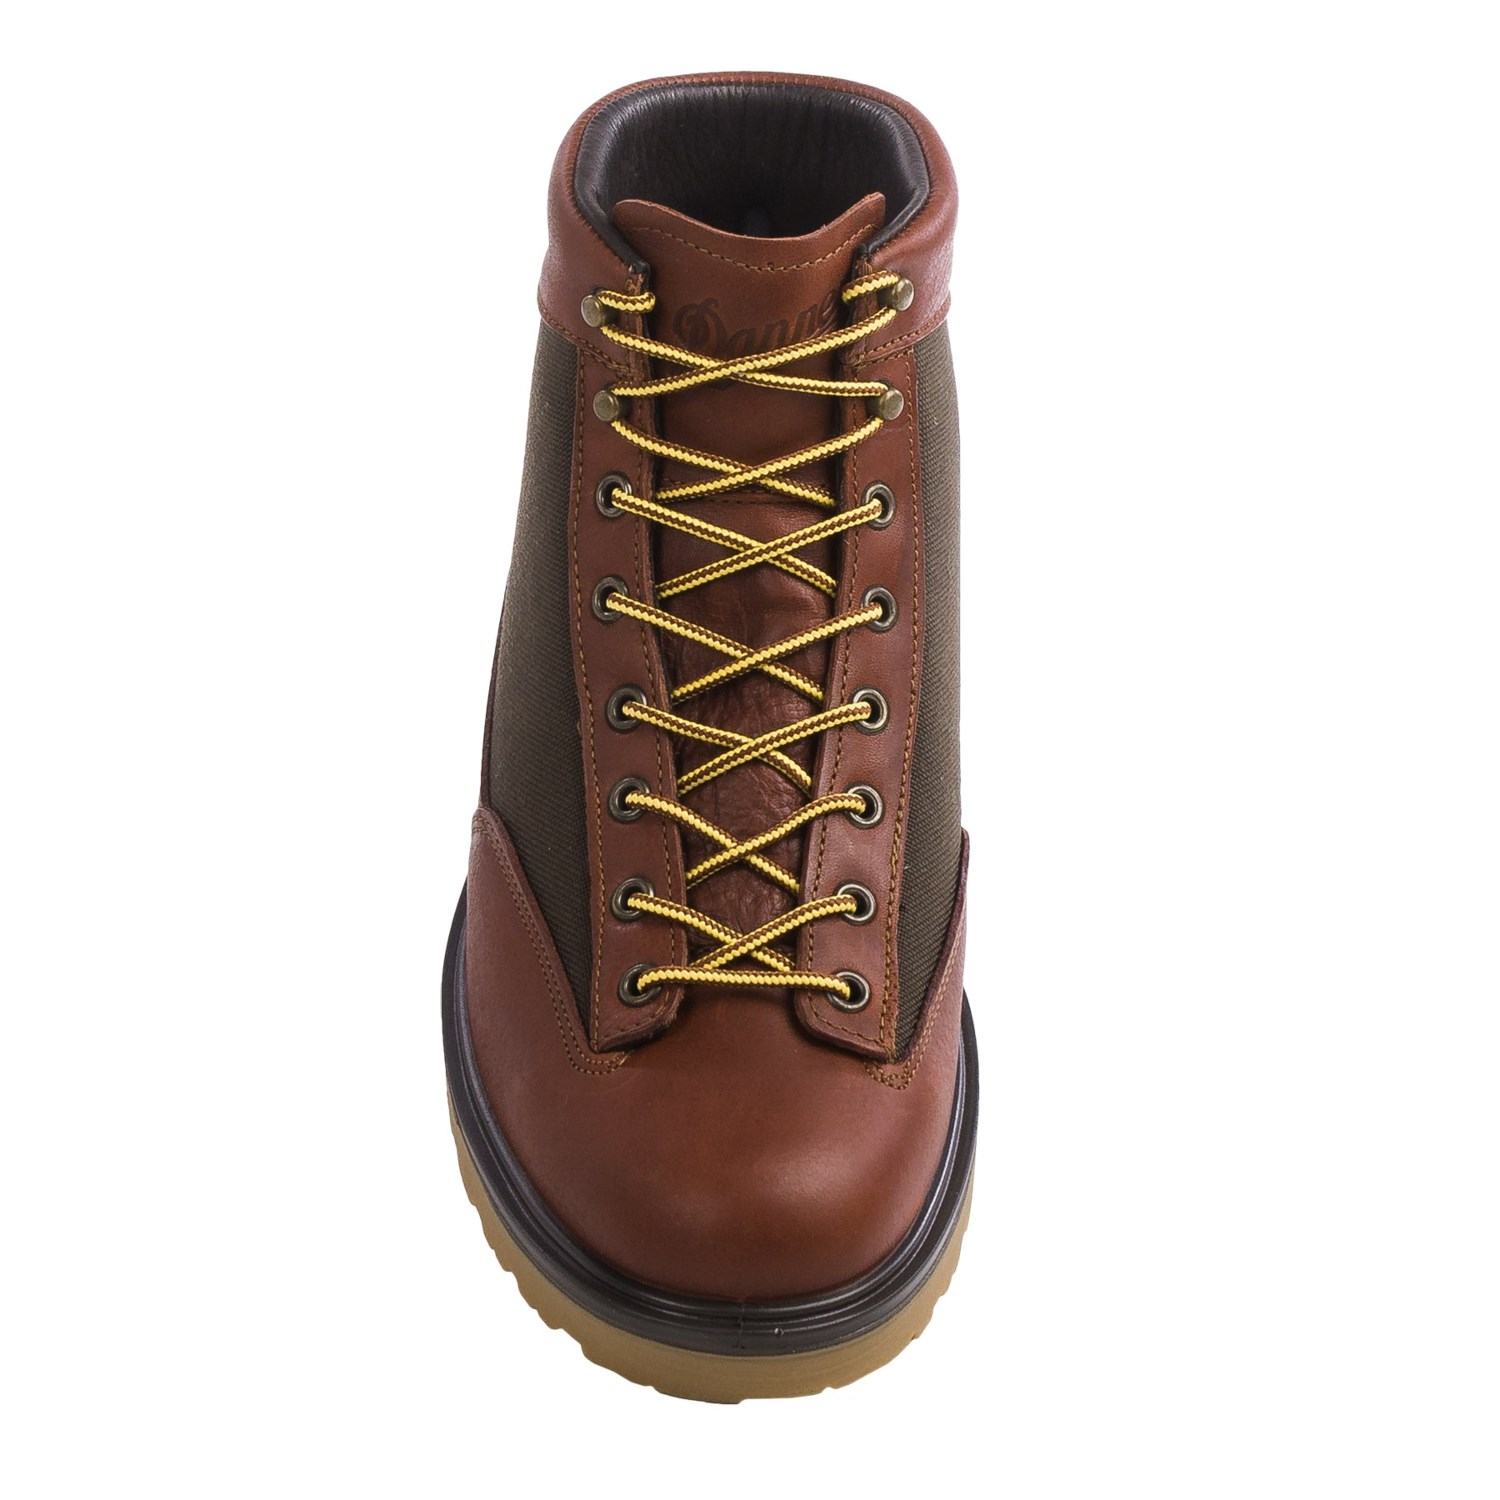 Danner Boots Outlet - Cr Boot